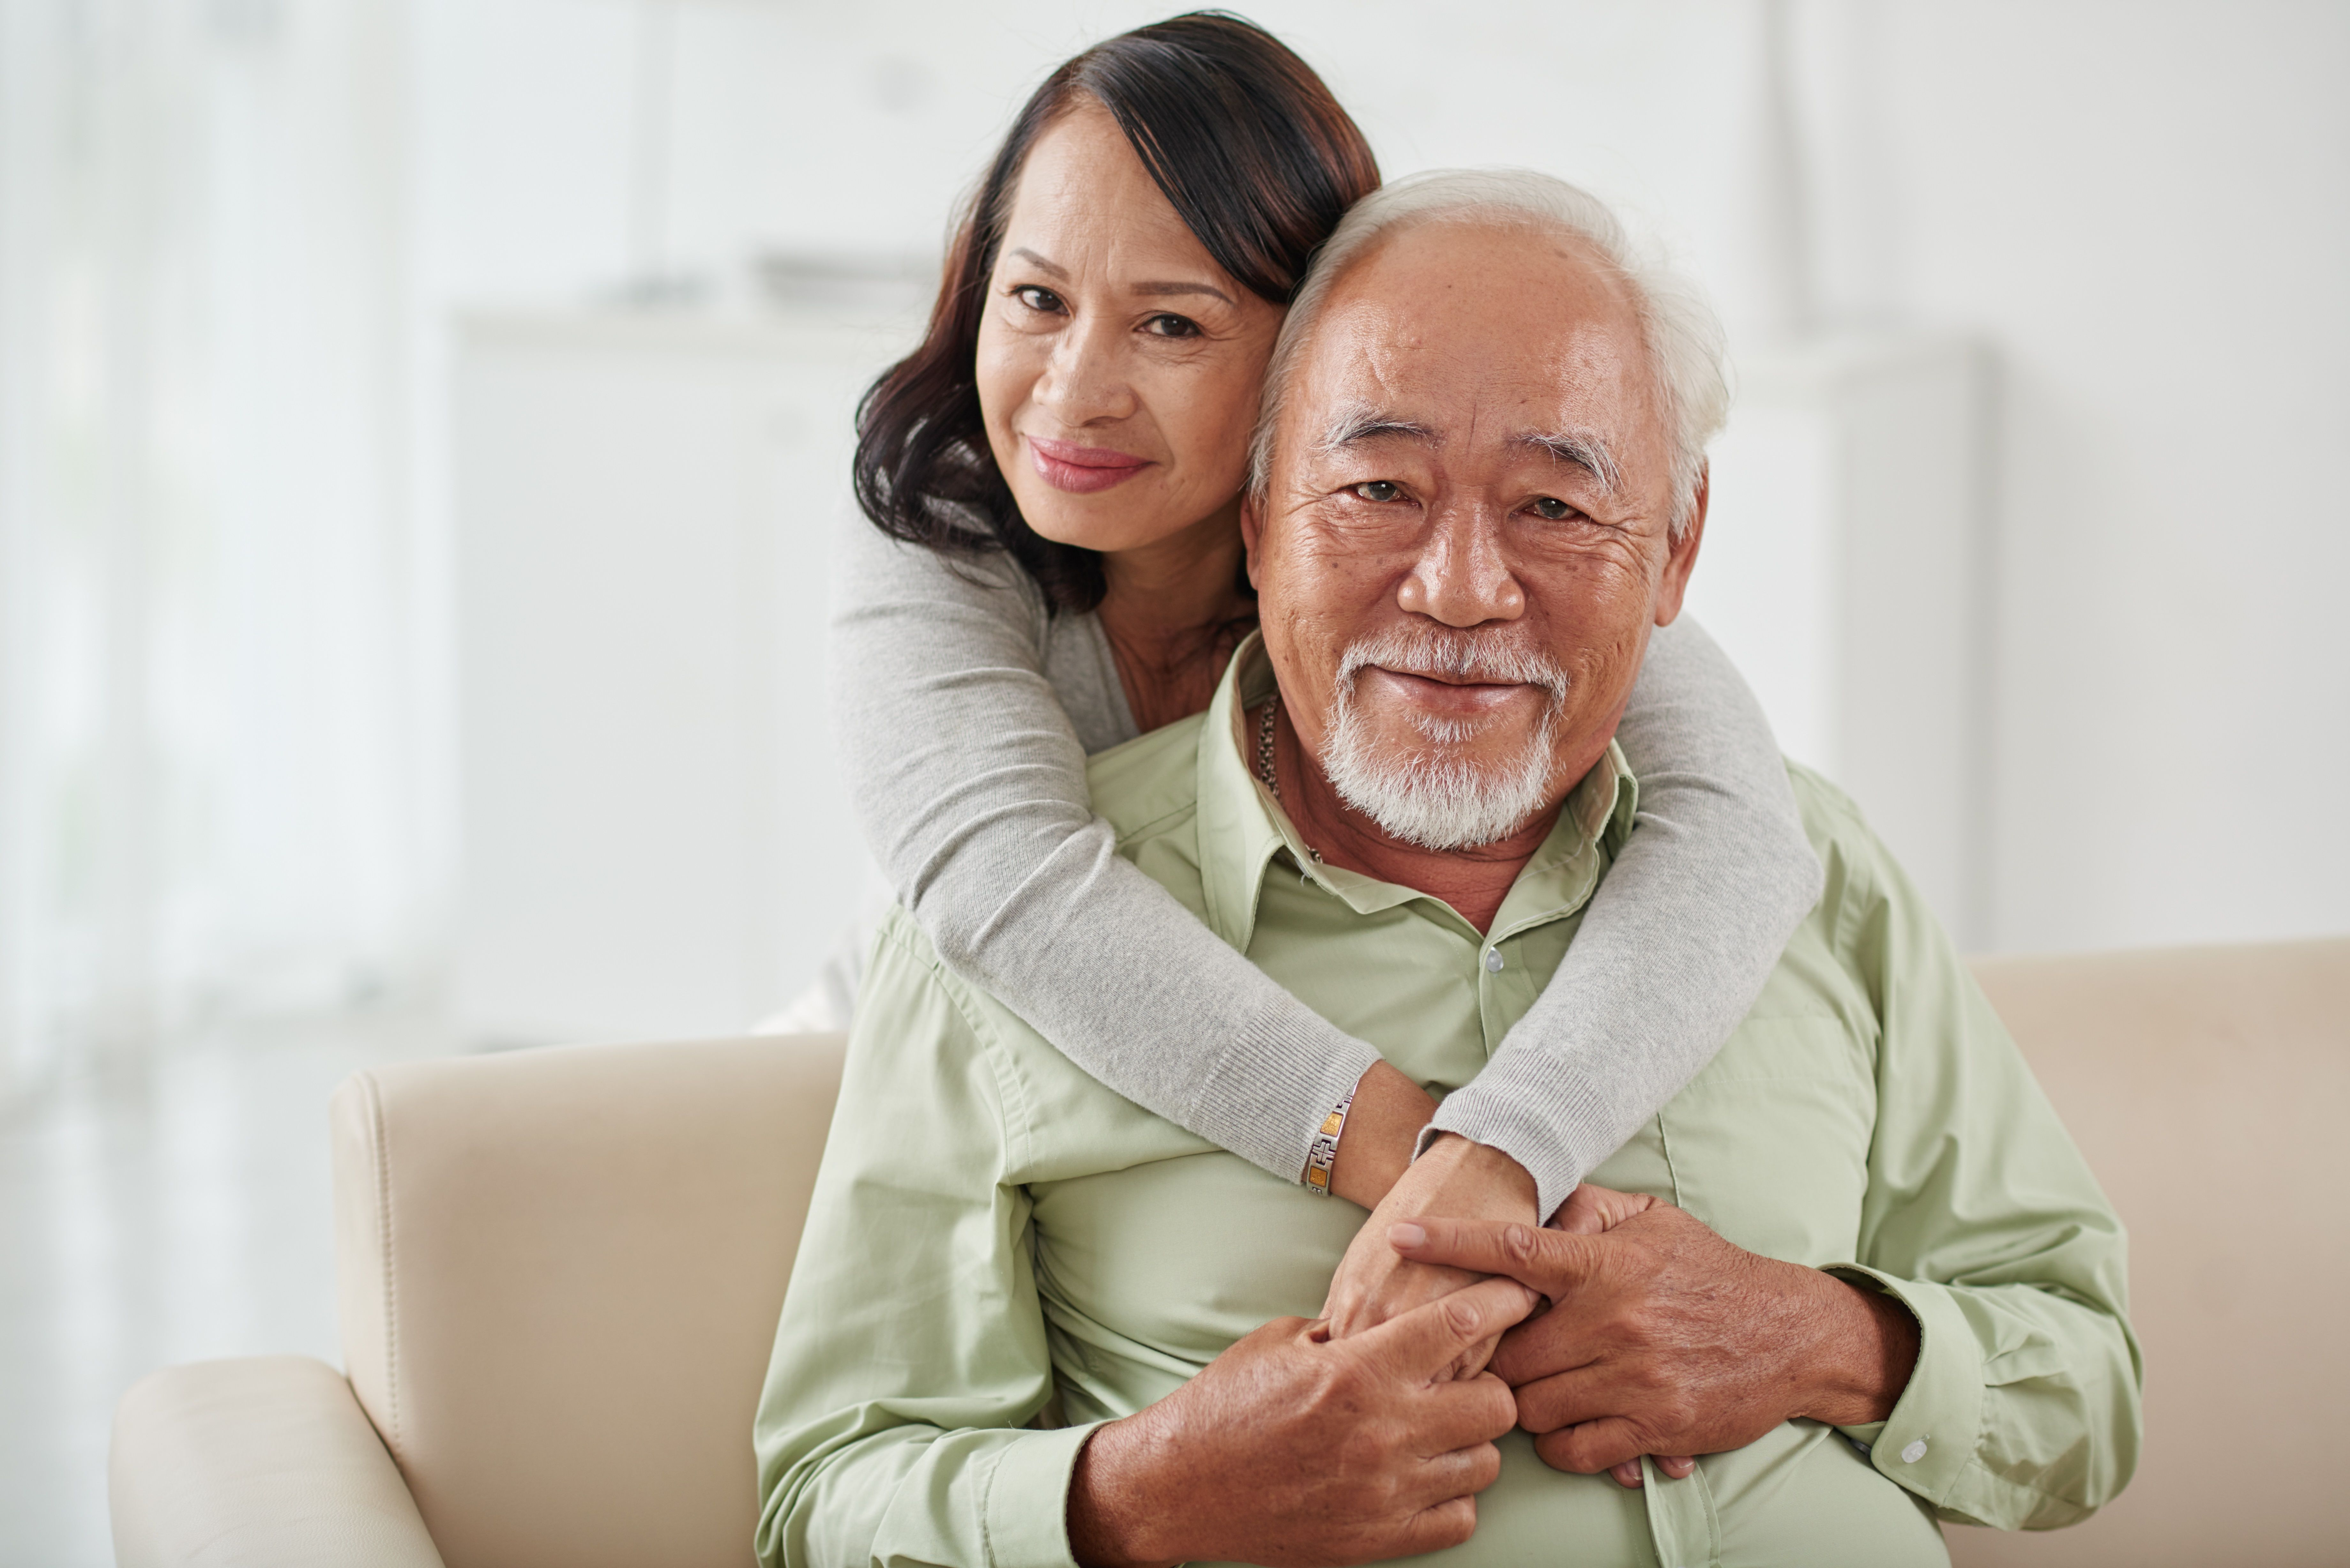 At firstlight our home care provides peace of mind to